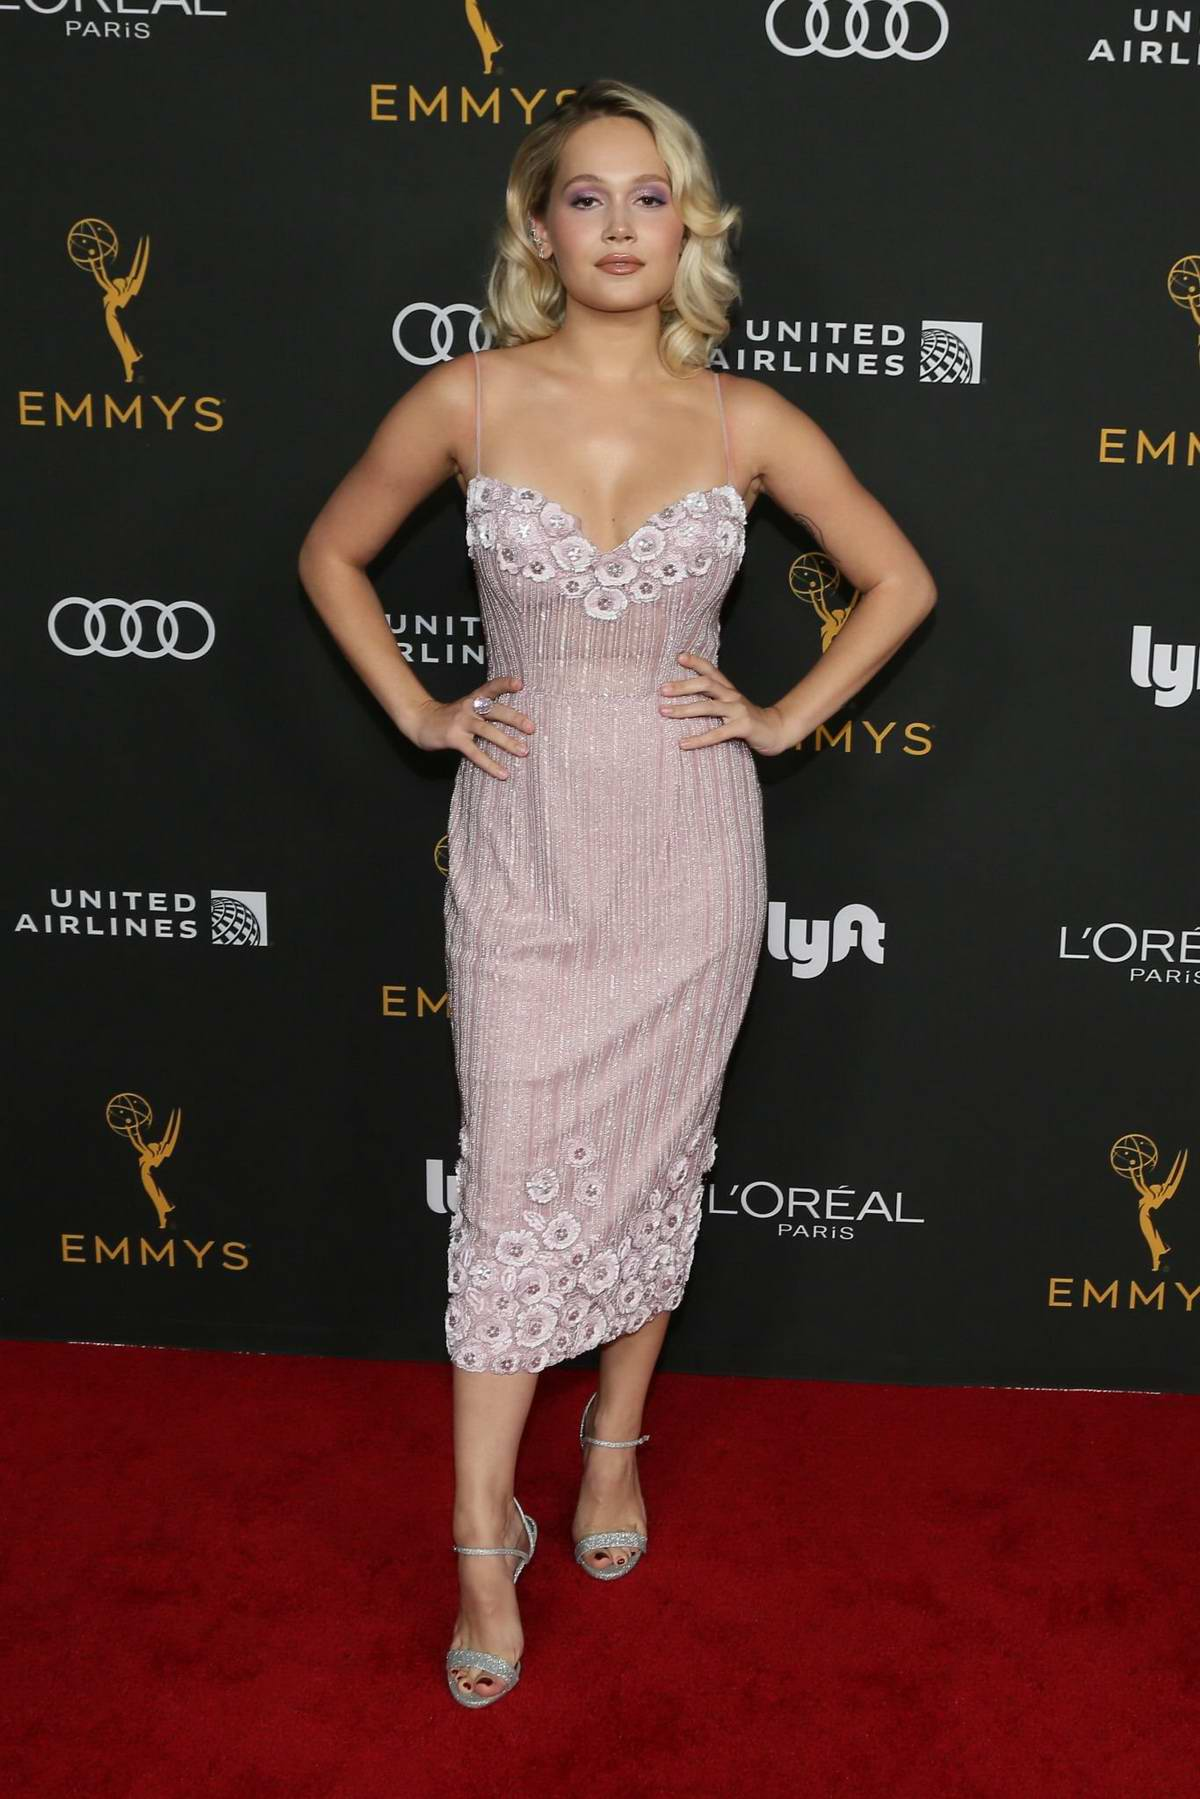 Kelli Berglund attends the Television Academy Honors Emmy Nominated Performers in Beverly Hills, Los Angeles